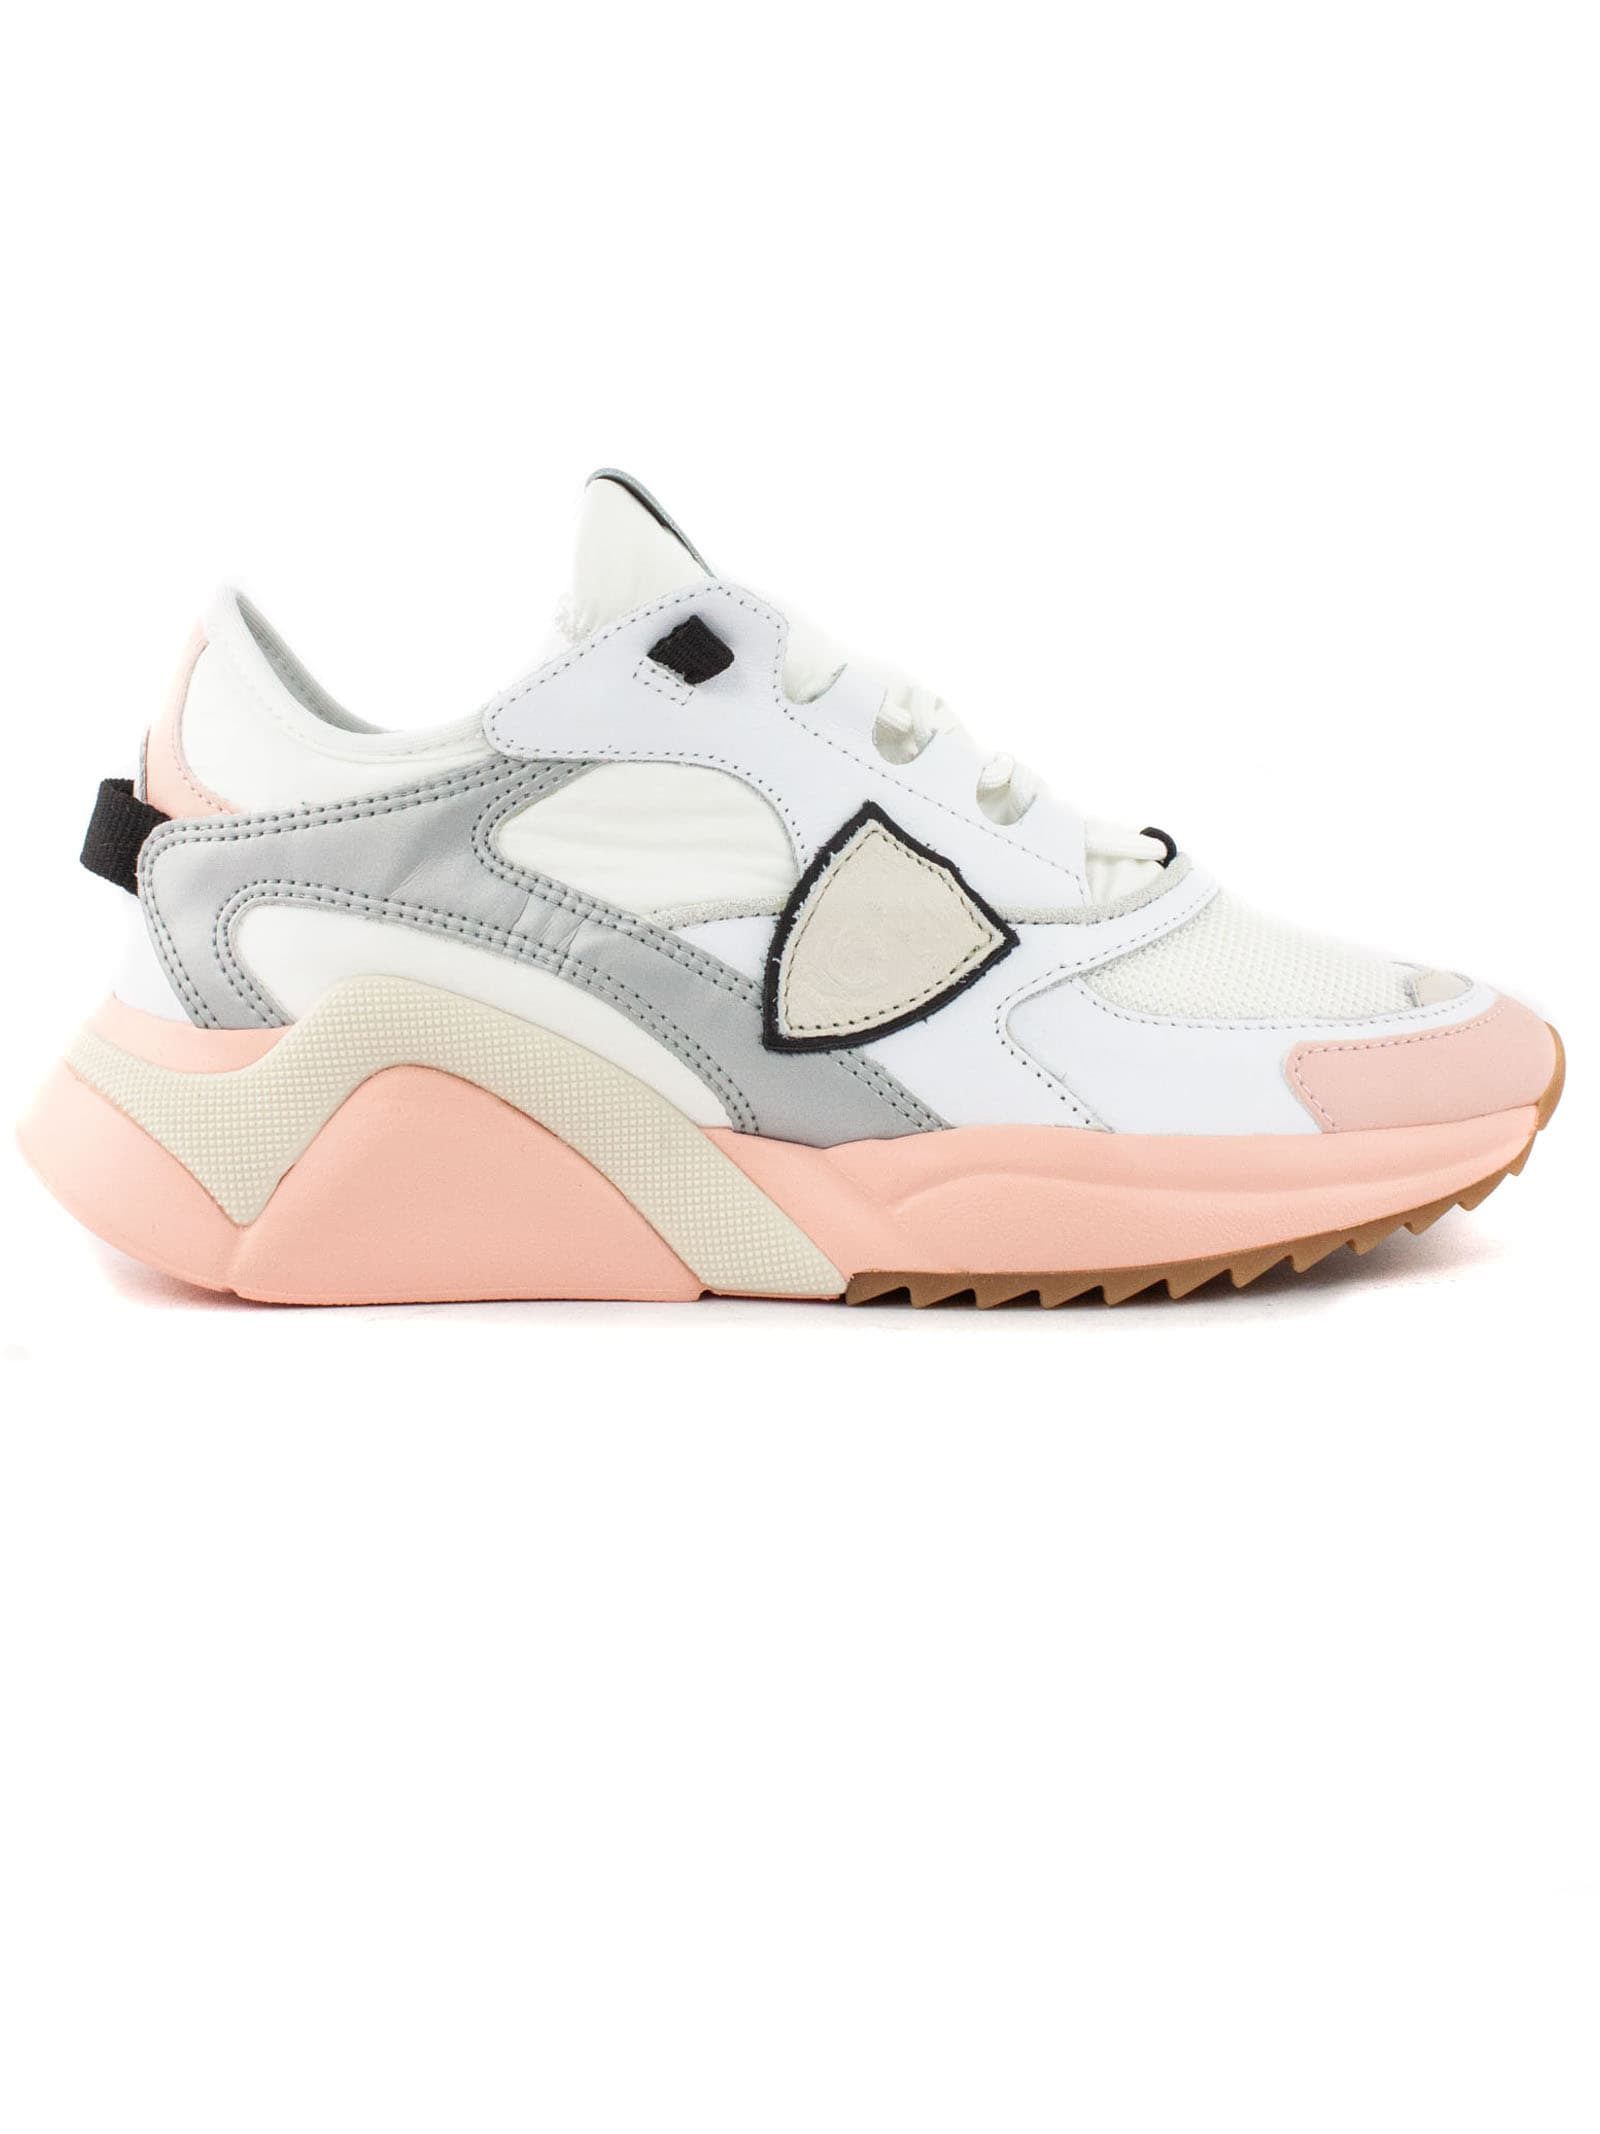 Philippe Model Suedes WHITE AND PINK EZE MONDIAL SNEAKERS